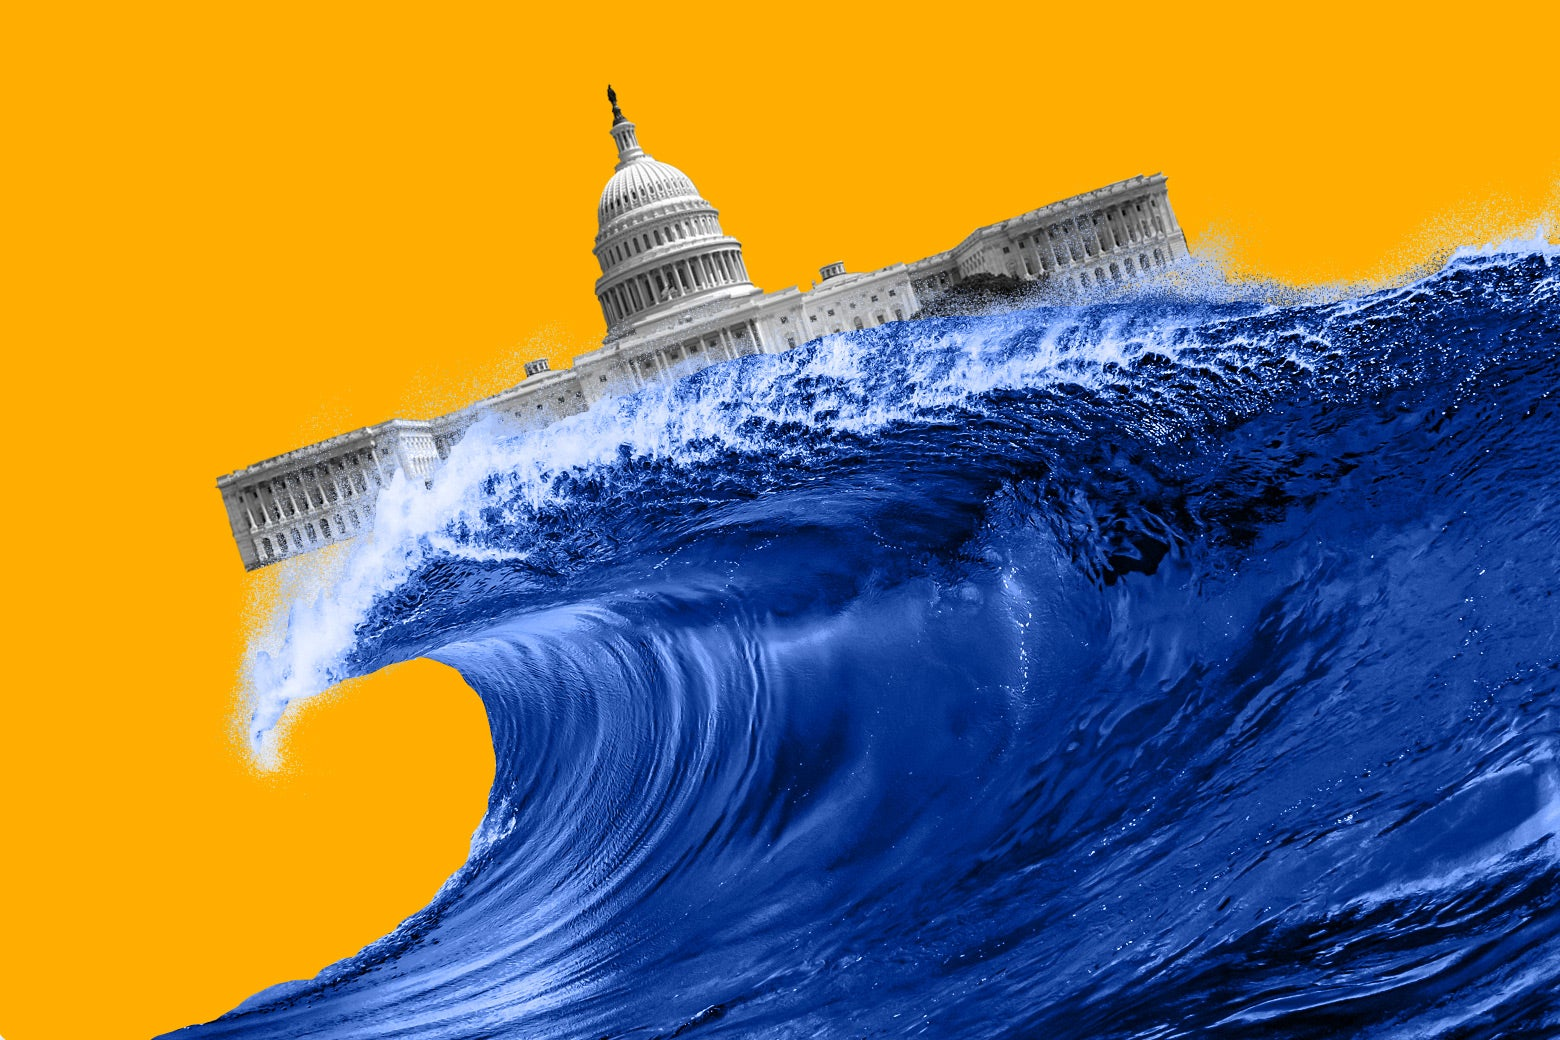 The Capitol afloat upon the crest of a blue wave